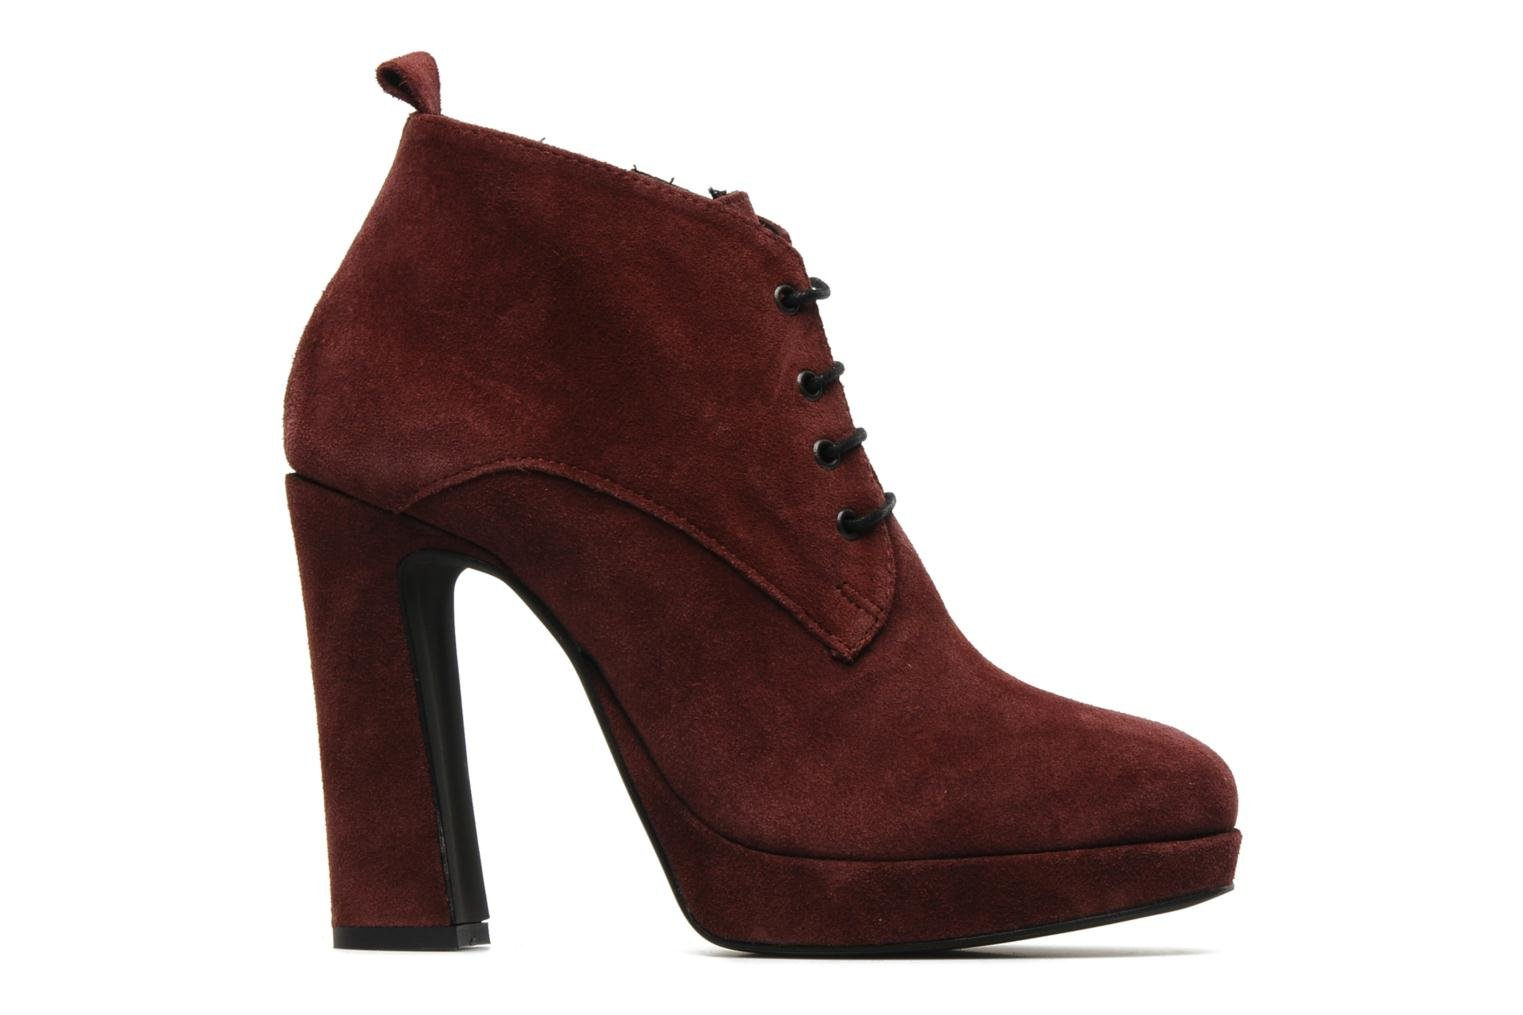 Nuts Cow Suede Bordo Br-498